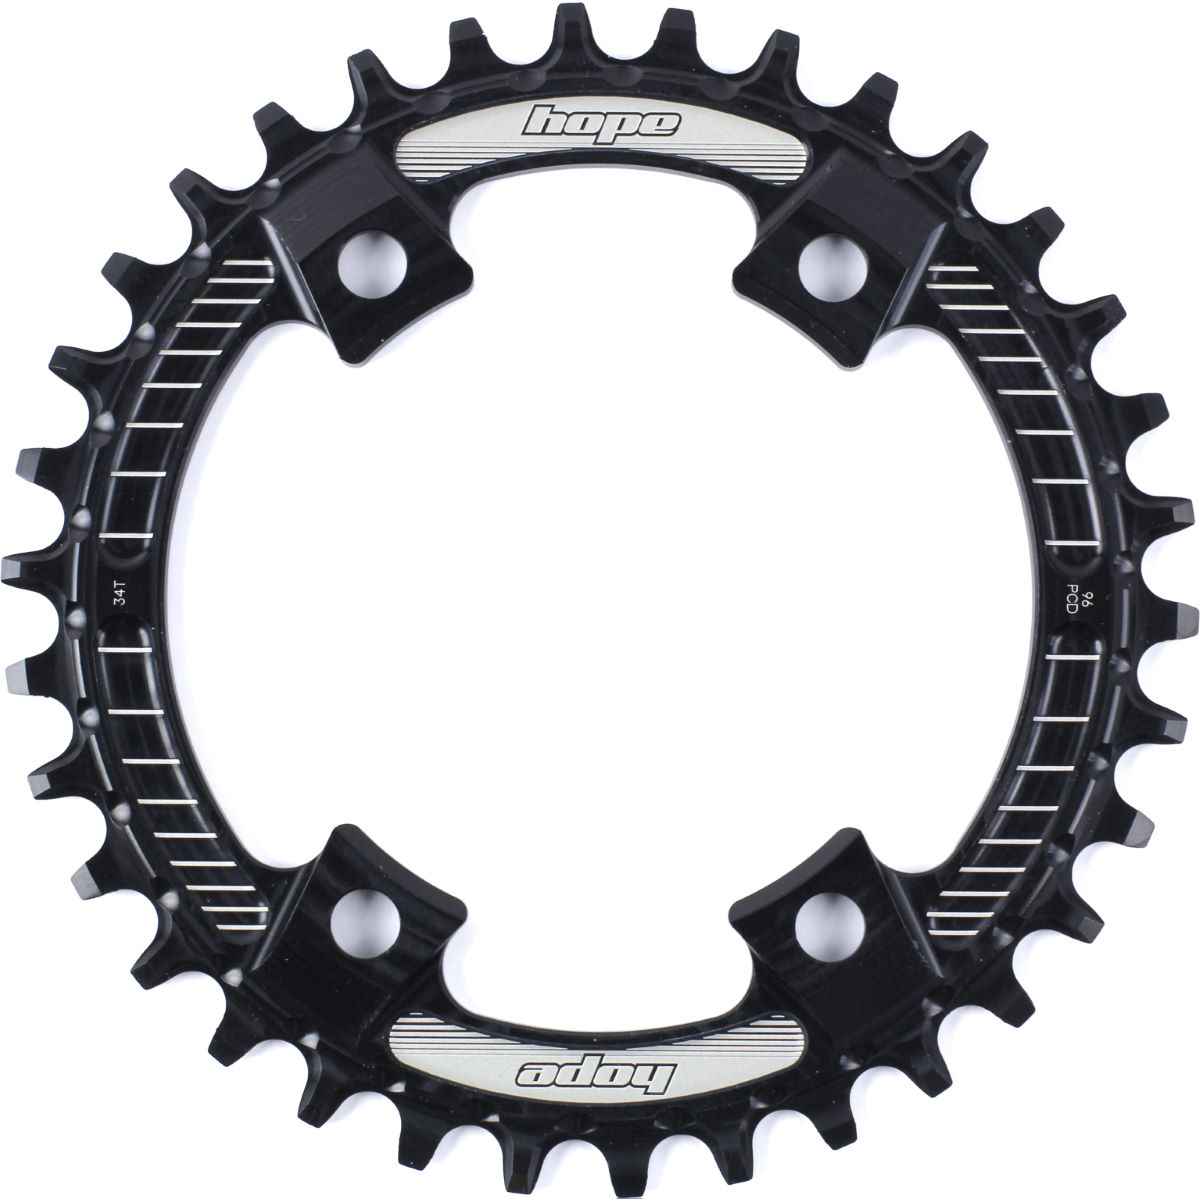 Hope Hope M8000/MT700 Retainer Ring   Chain Rings